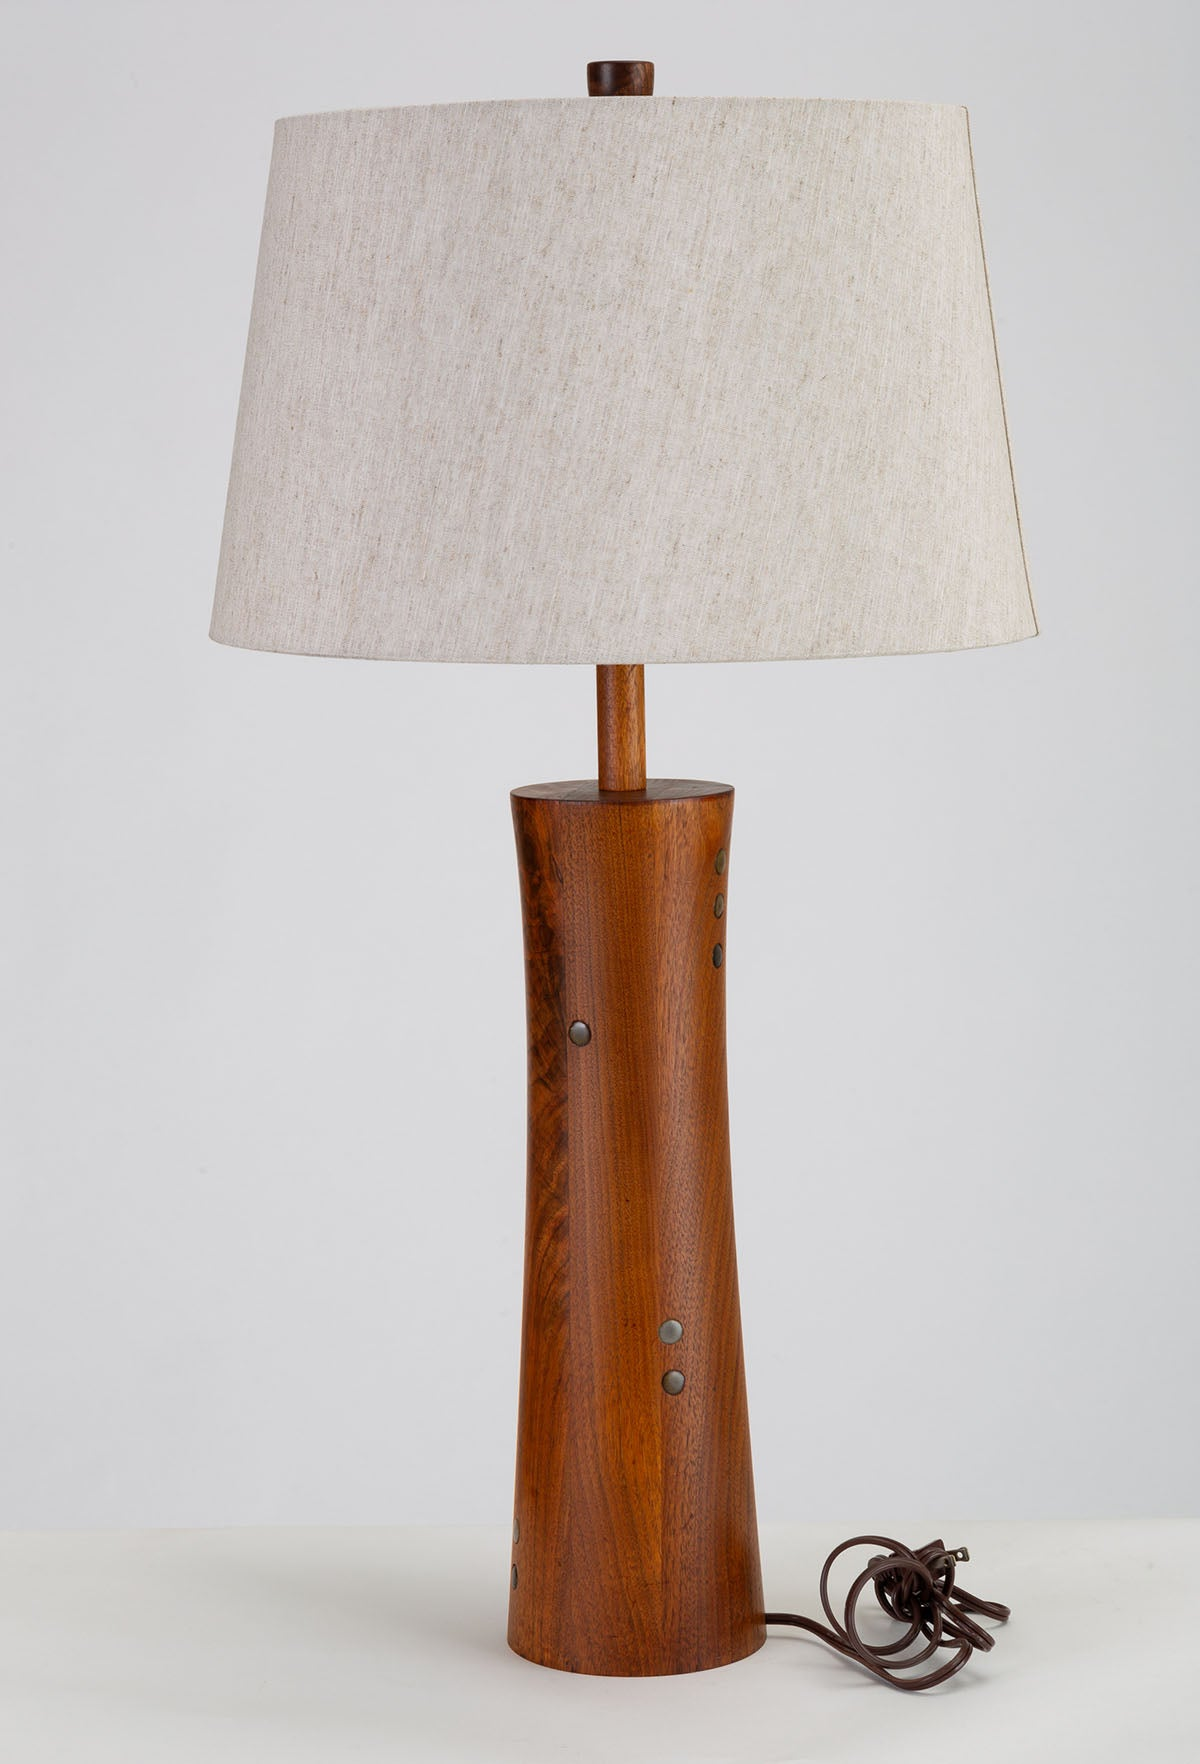 Wooden Table Lamp with Tile Inlay by Gordon & Jane Martz